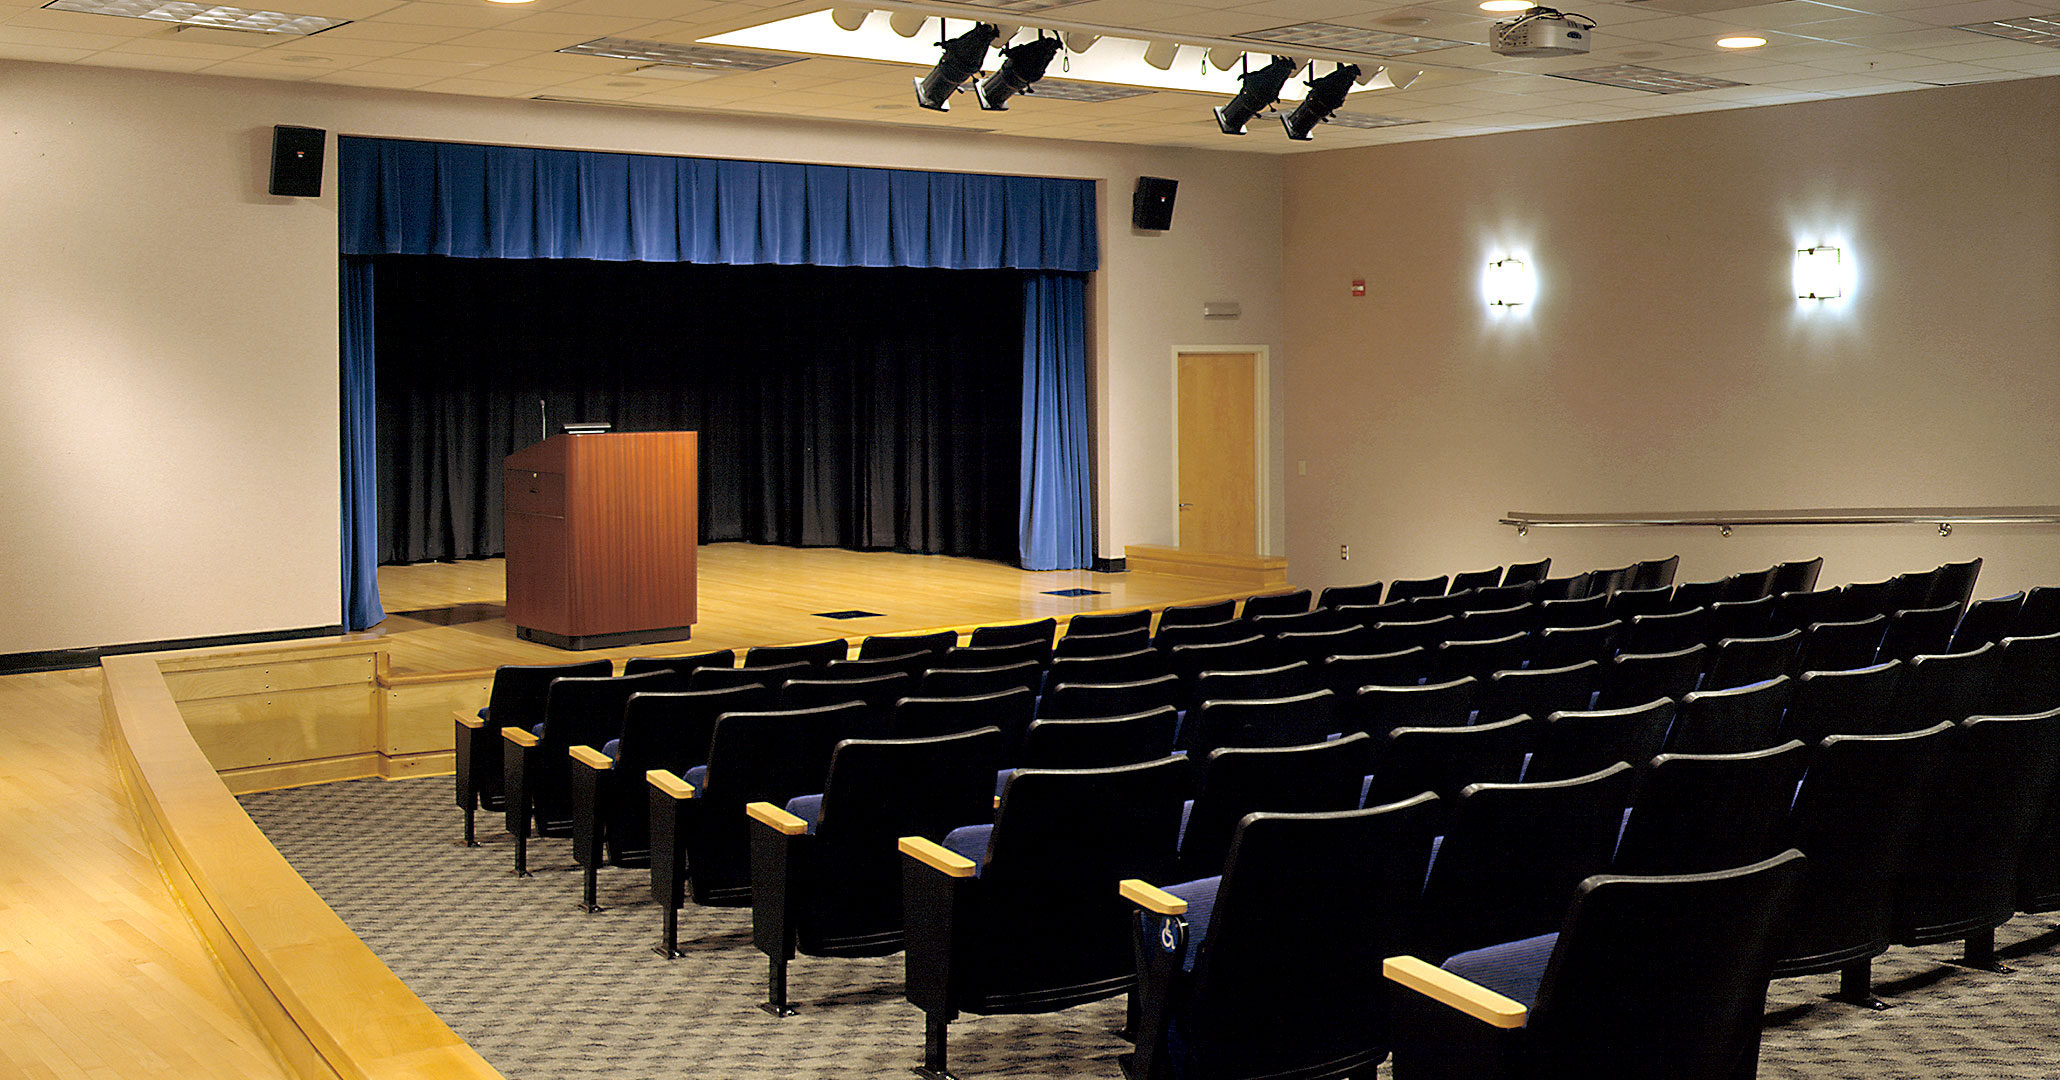 Midlands Technical College worked with Boudreaux architects to design auditorium classrooms for the Airport Campus.